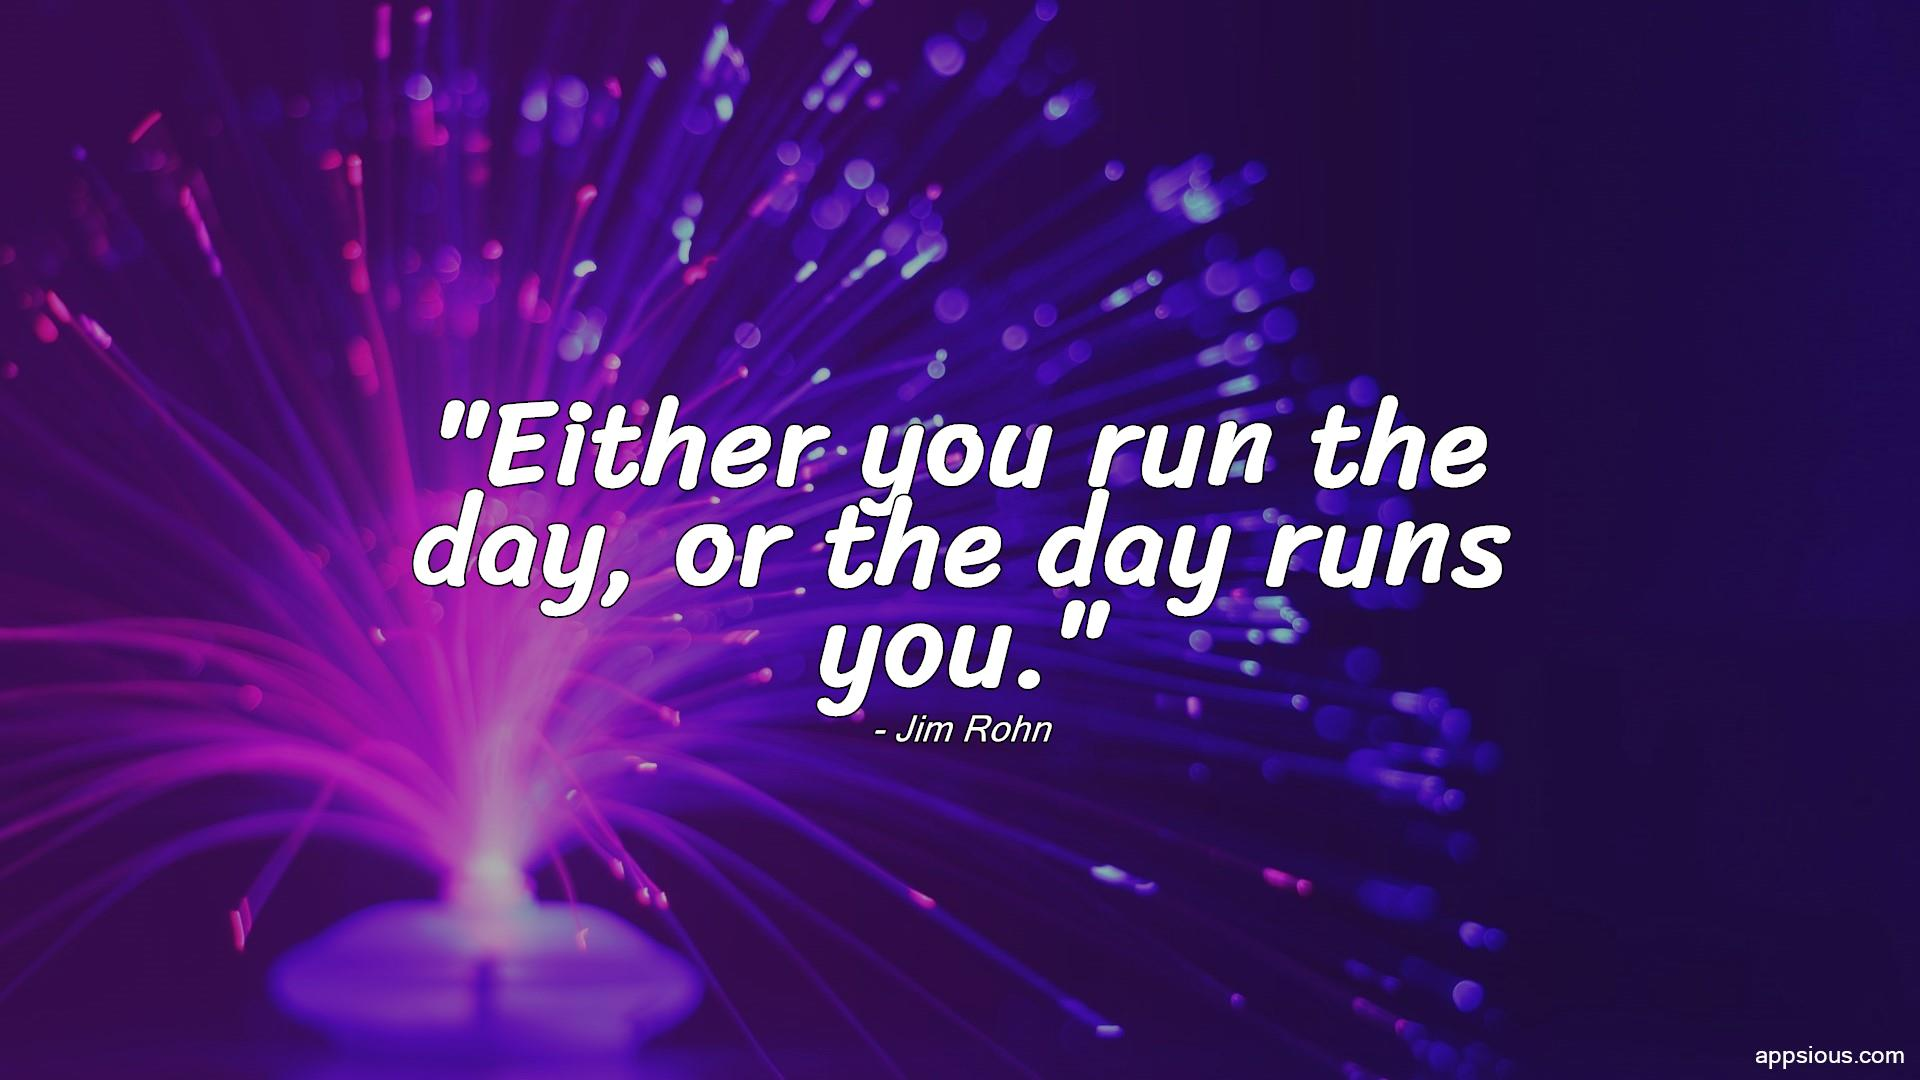 Either you run the day, or the day runs you.